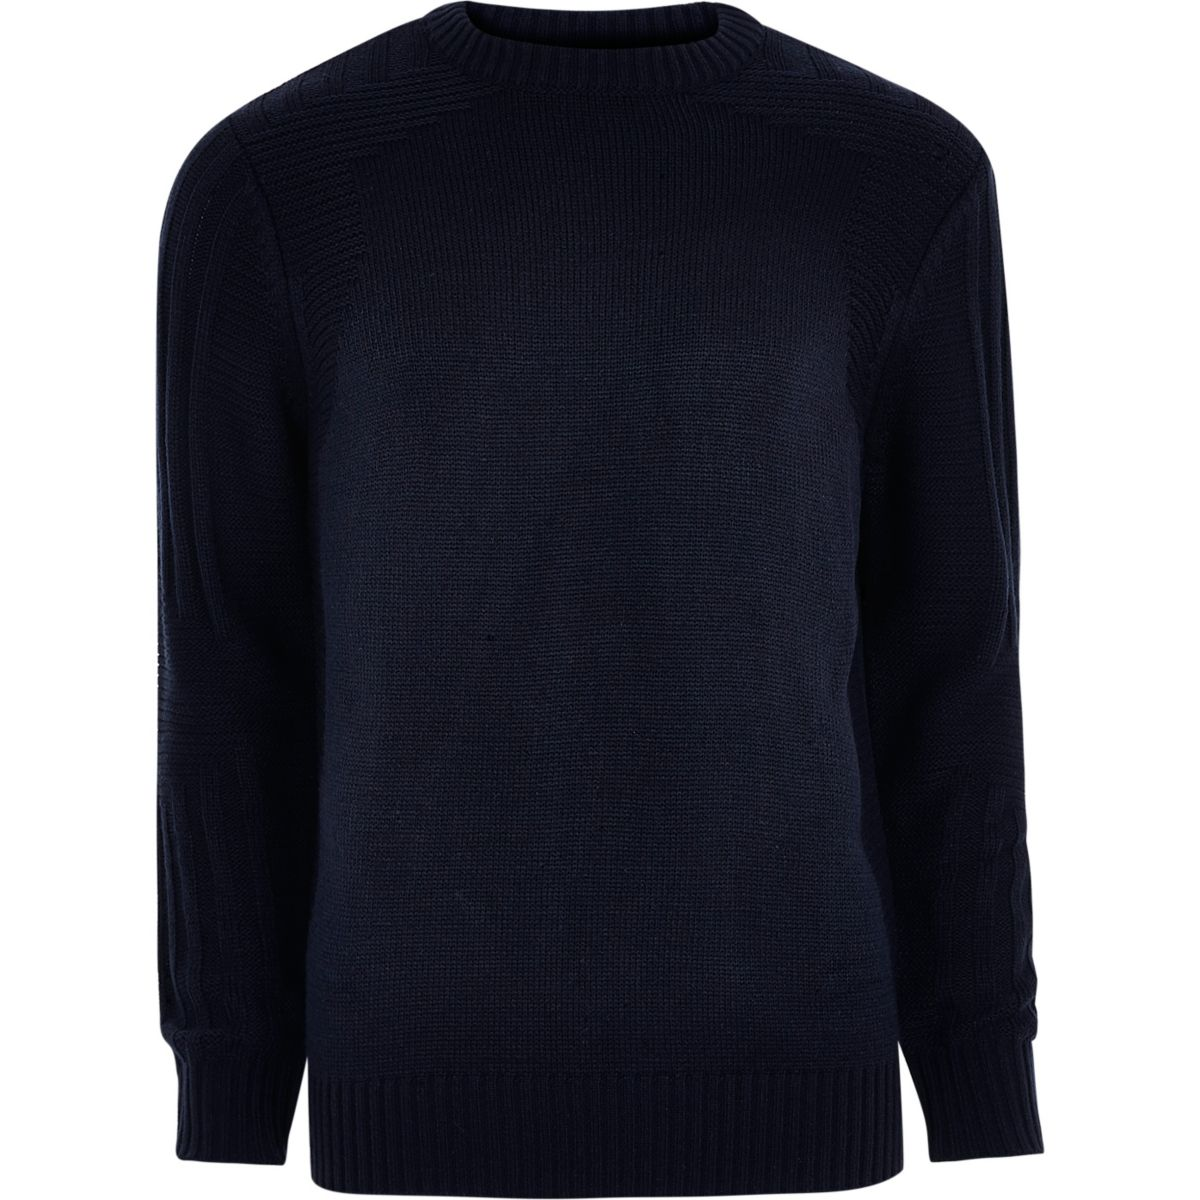 Navy blue textured crew neck knit sweater